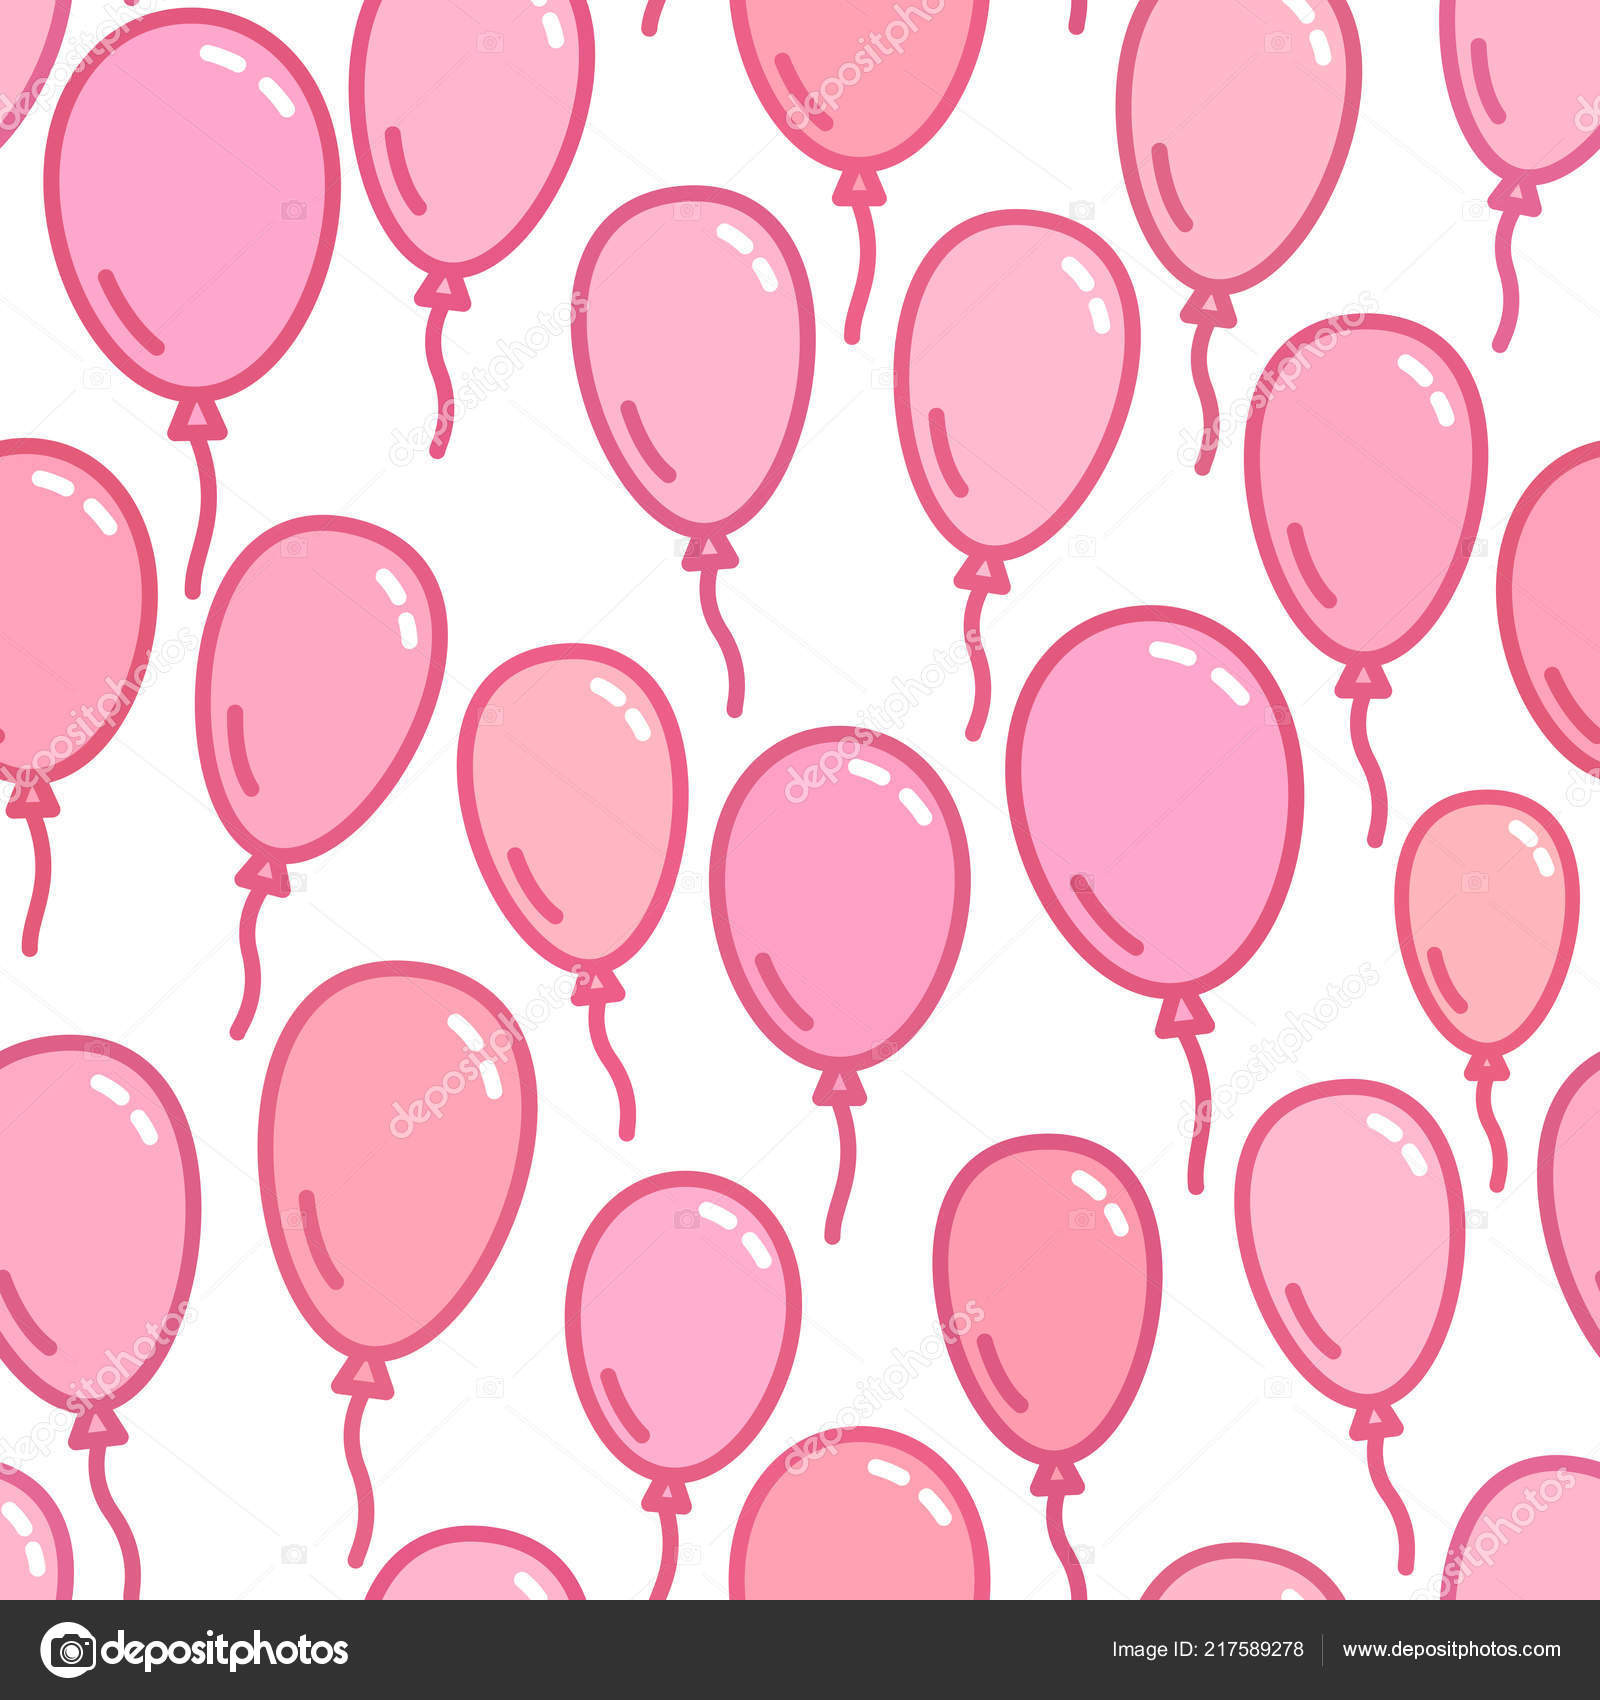 Seamless pattern with pink balloons, naive and simple background, pink wallpaper, vector illustration